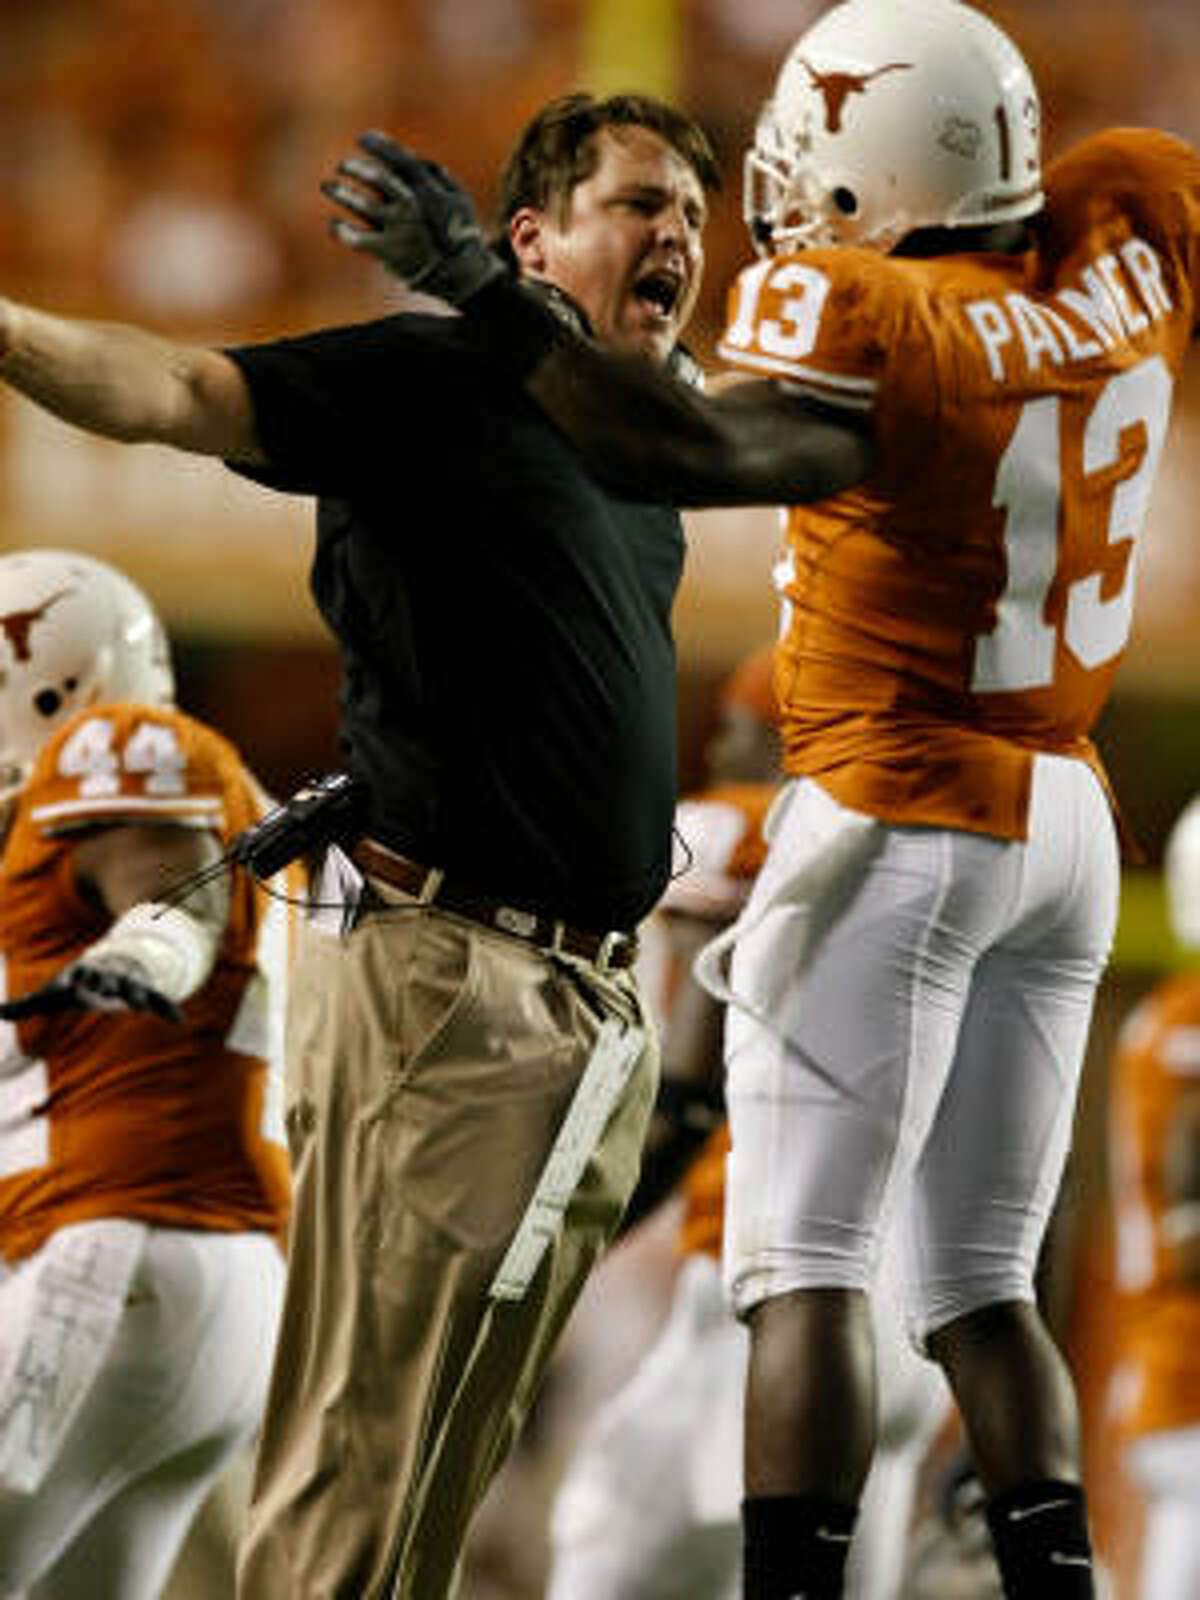 The Longhorns have responded to defensive coordinator Will Muschamp's high expectations and fiery demeanor.